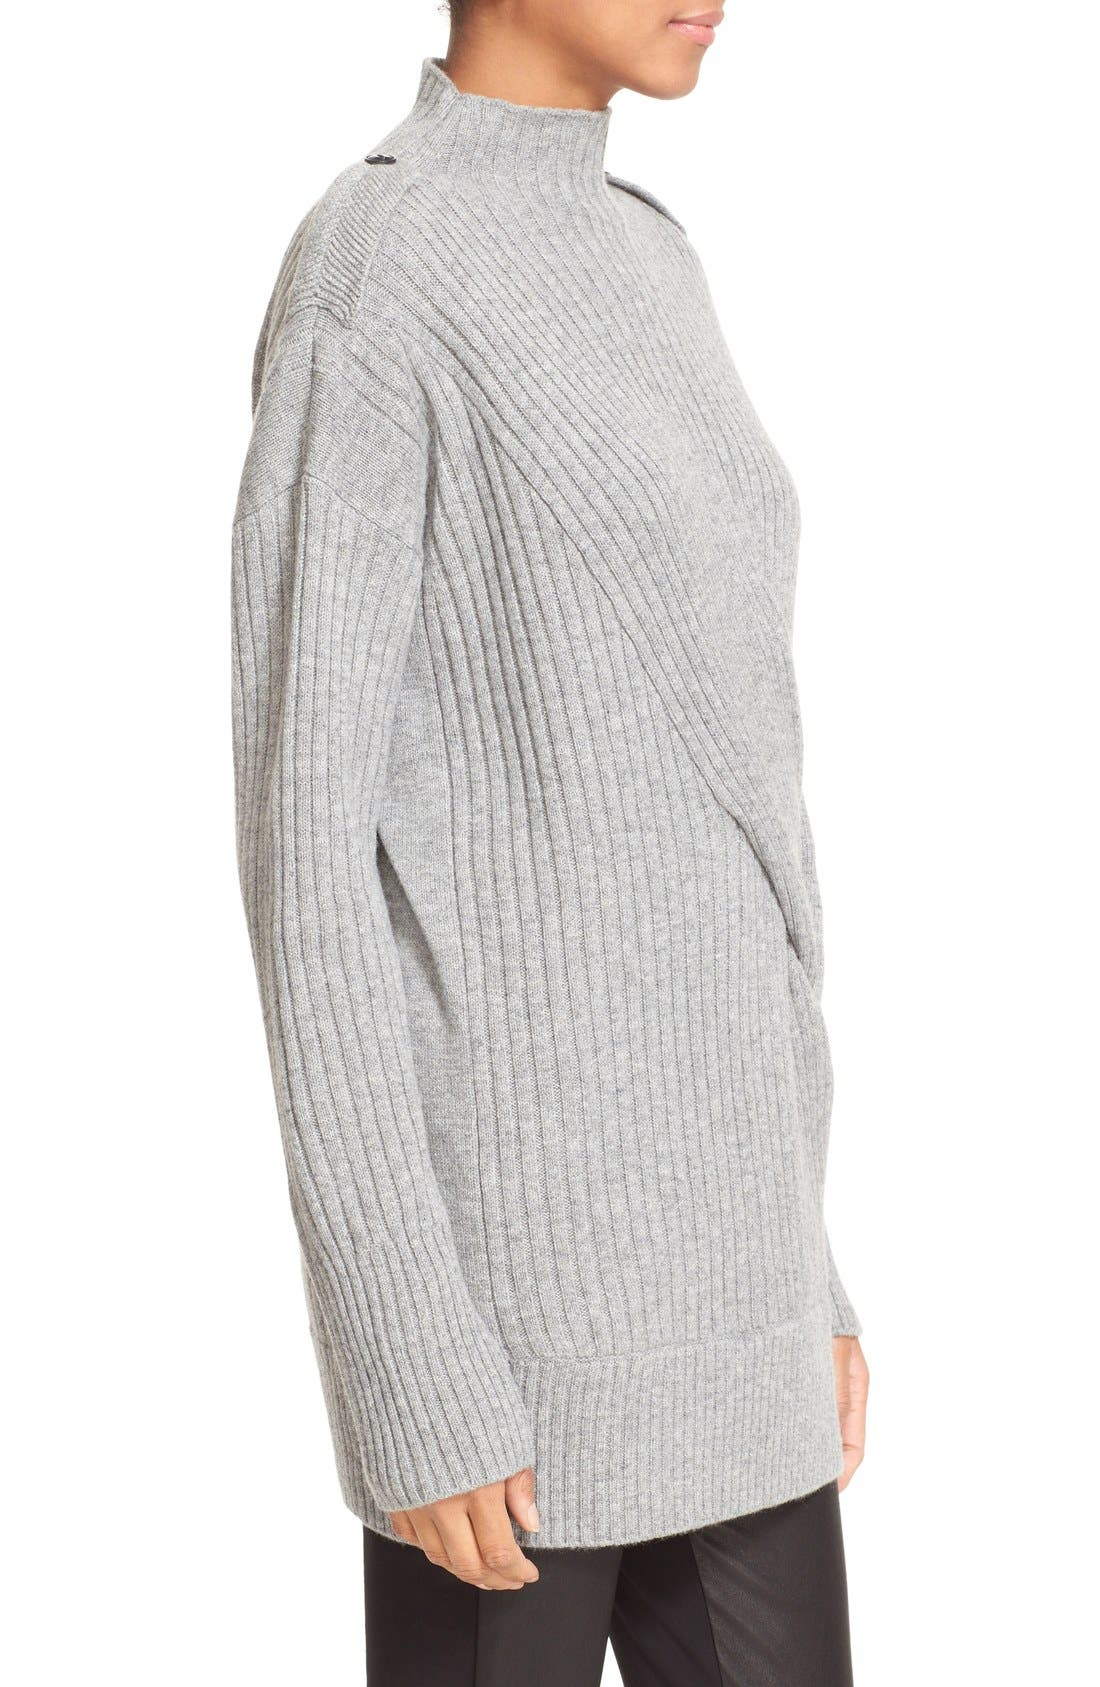 Alternate Image 3  - rag & bone 'Dale' Merino Wool Turtleneck Sweater